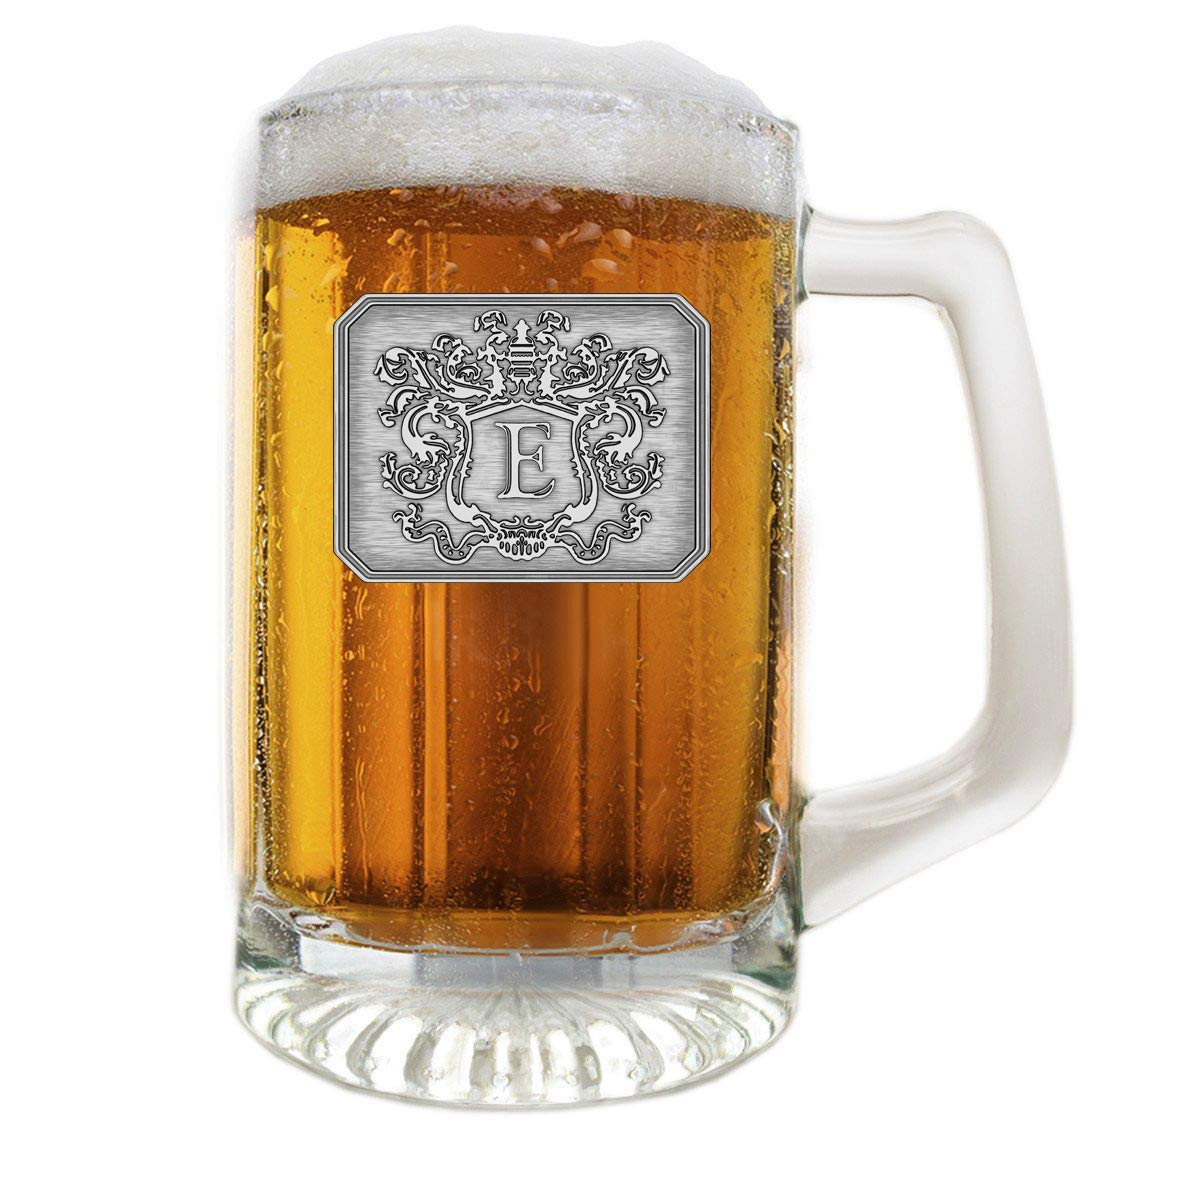 a206e0808a1 Amazon.com | Fine Occasion Glass Beer Pub Mug Monogram Initial Pewter  Engraved Crest with Letter E, 25 oz: Beer Glasses